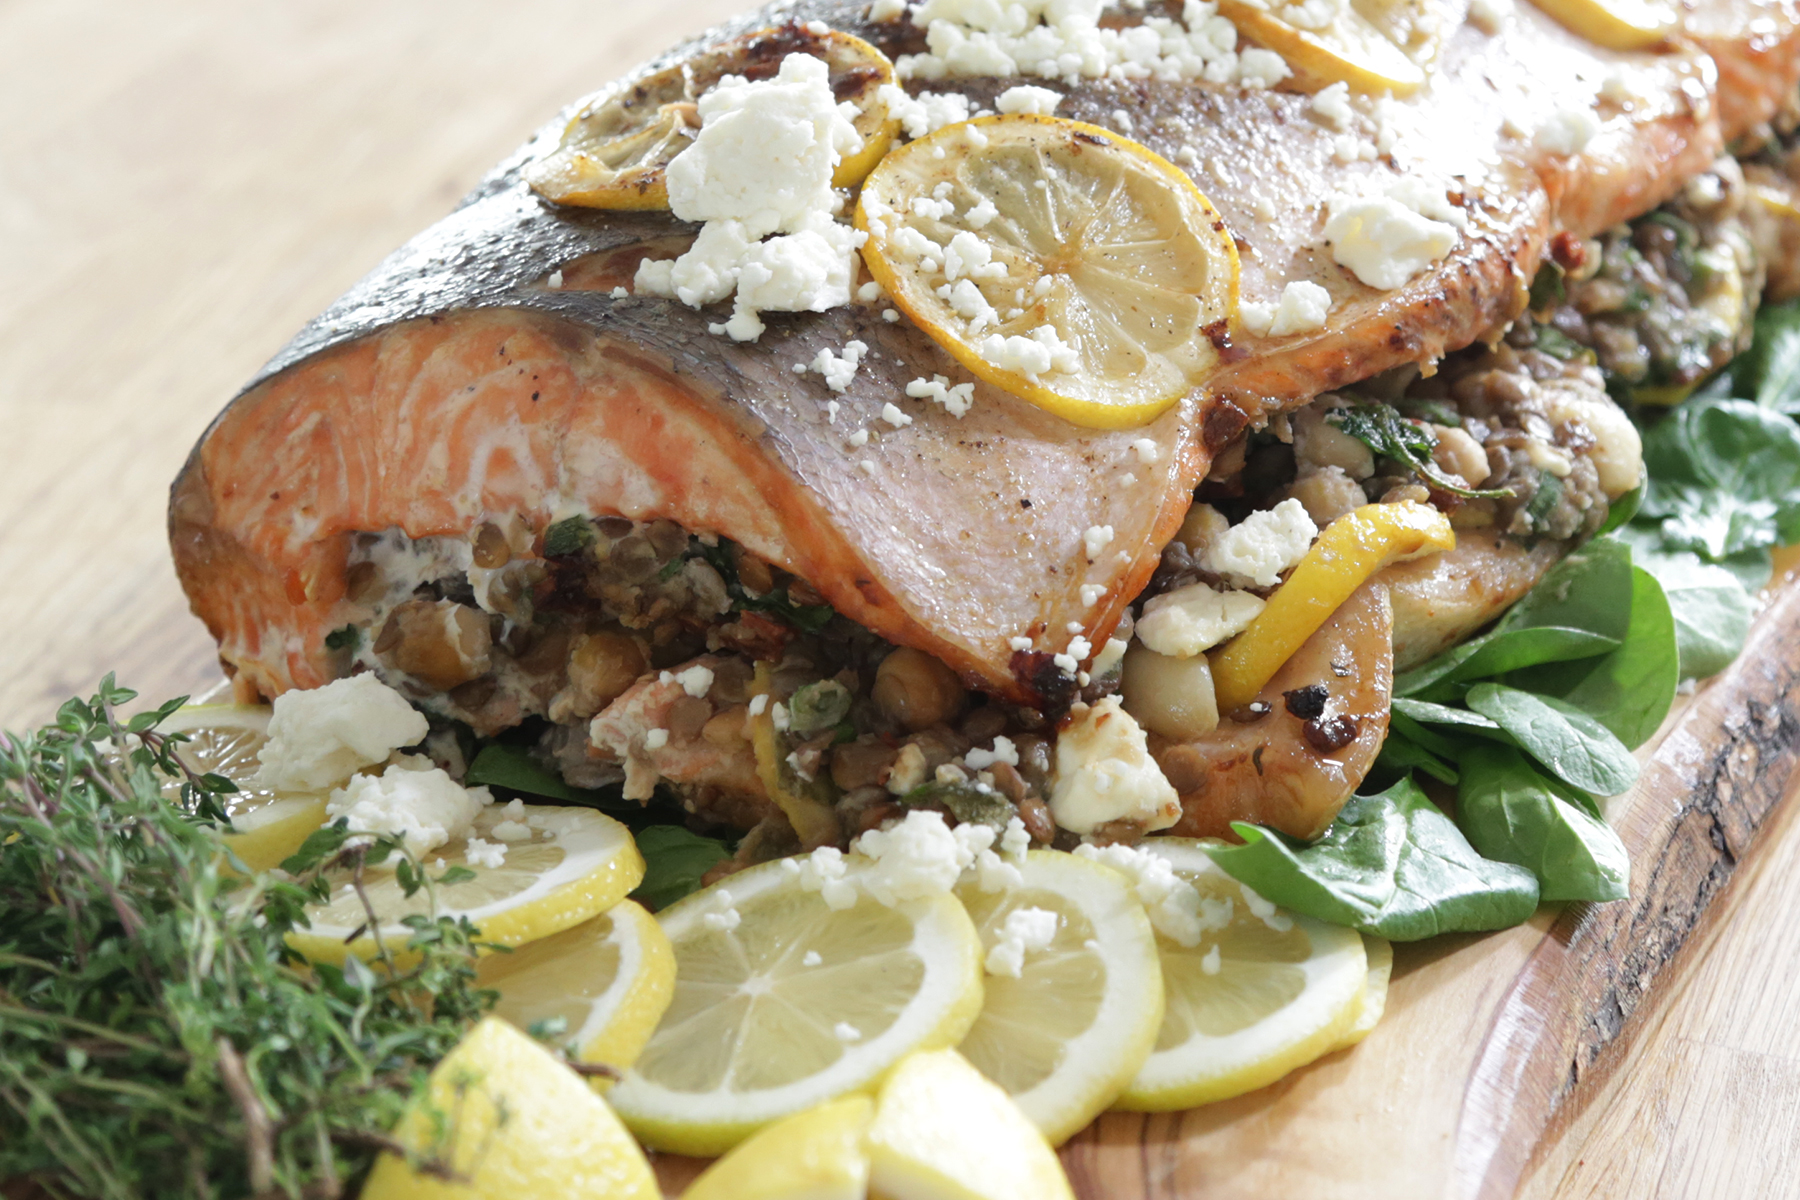 How to Make Lentil and Sun-Dried Tomato Stuffed Salmon